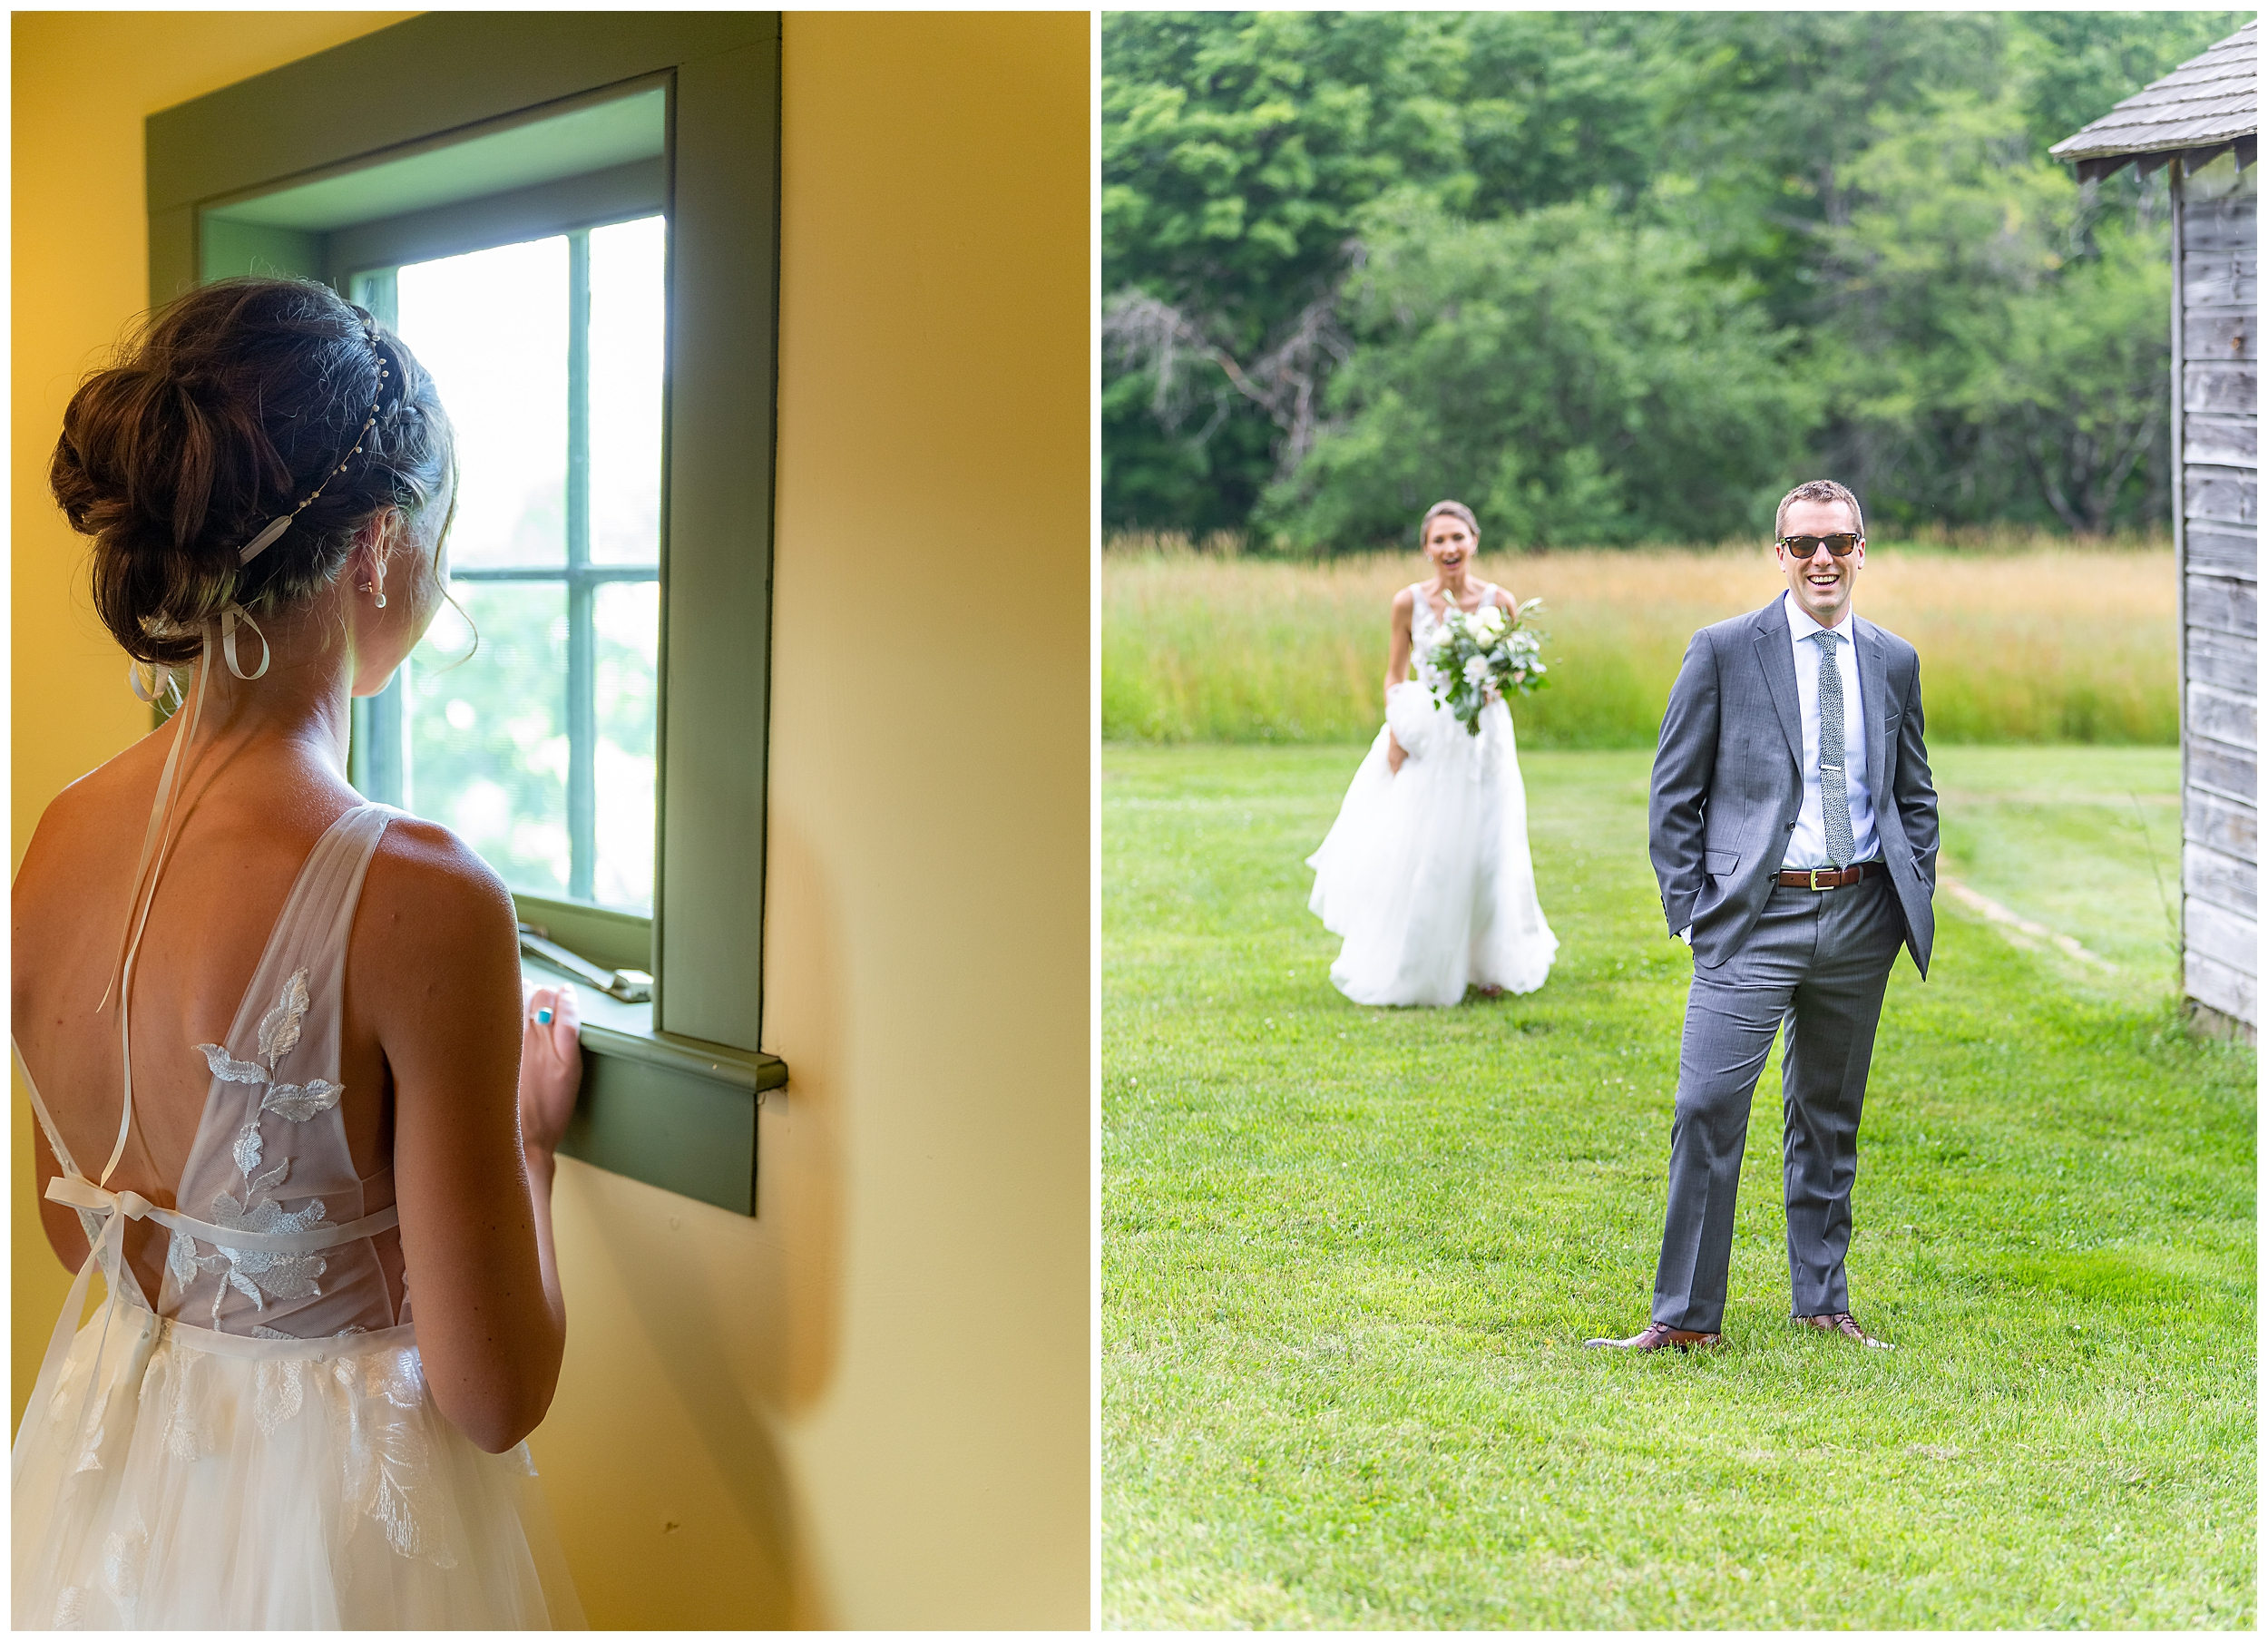 Sophia looks out from the bridal suite to where she will see her groom for the first time that day. He waits patiently by the grey barn until she is close enough to touch his shoulder.